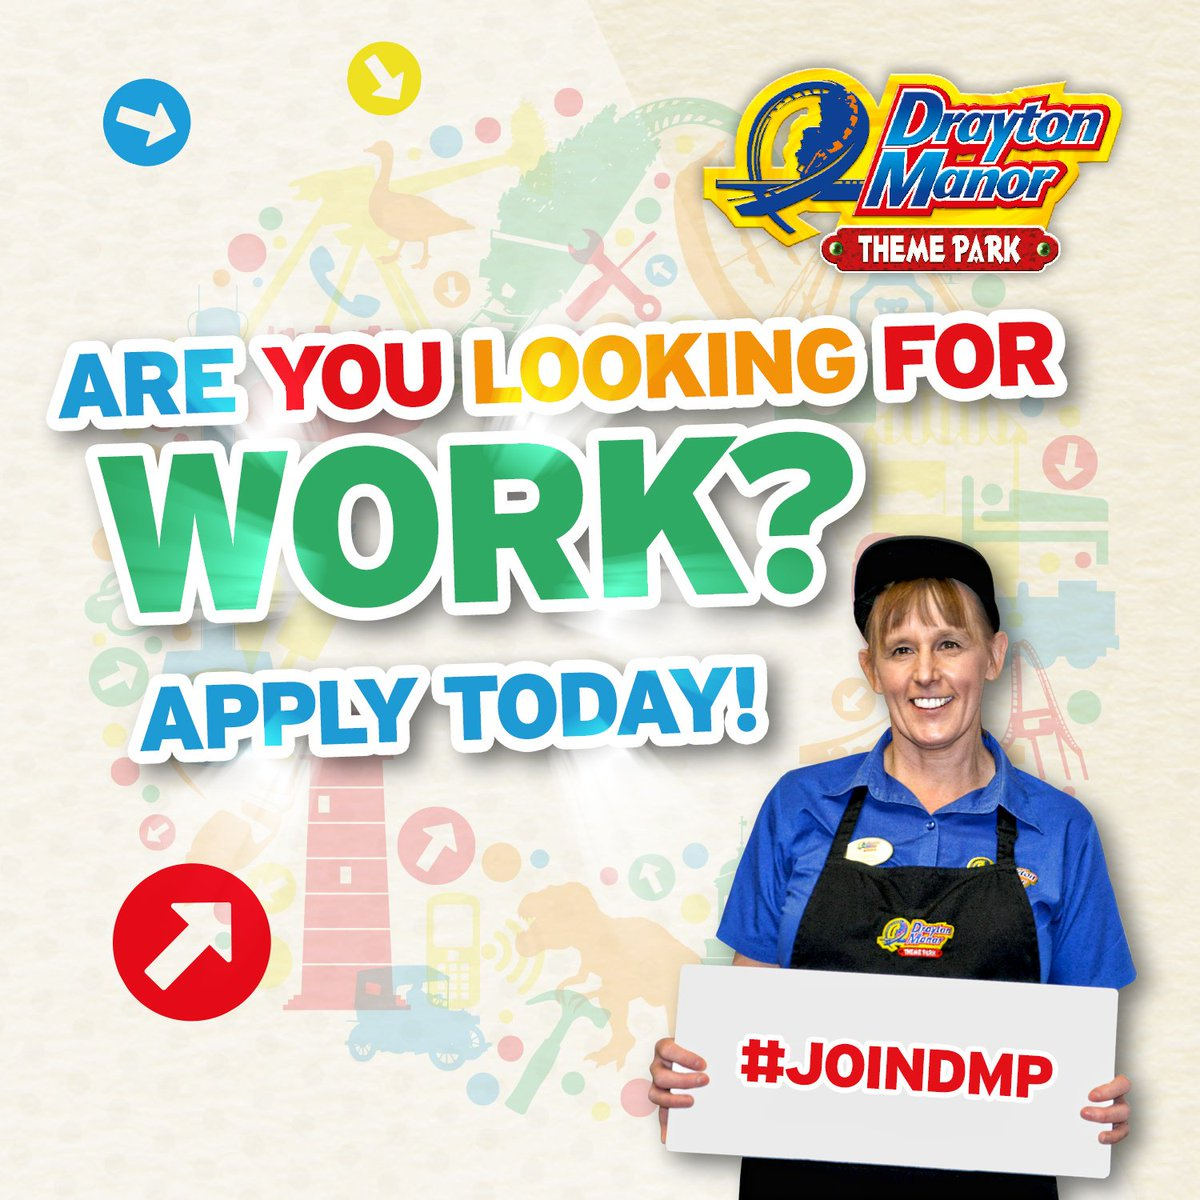 We're recruiting!  Do you want to be part of the team who create fun family memories? Apply now http://socsi.in/1Uhcc